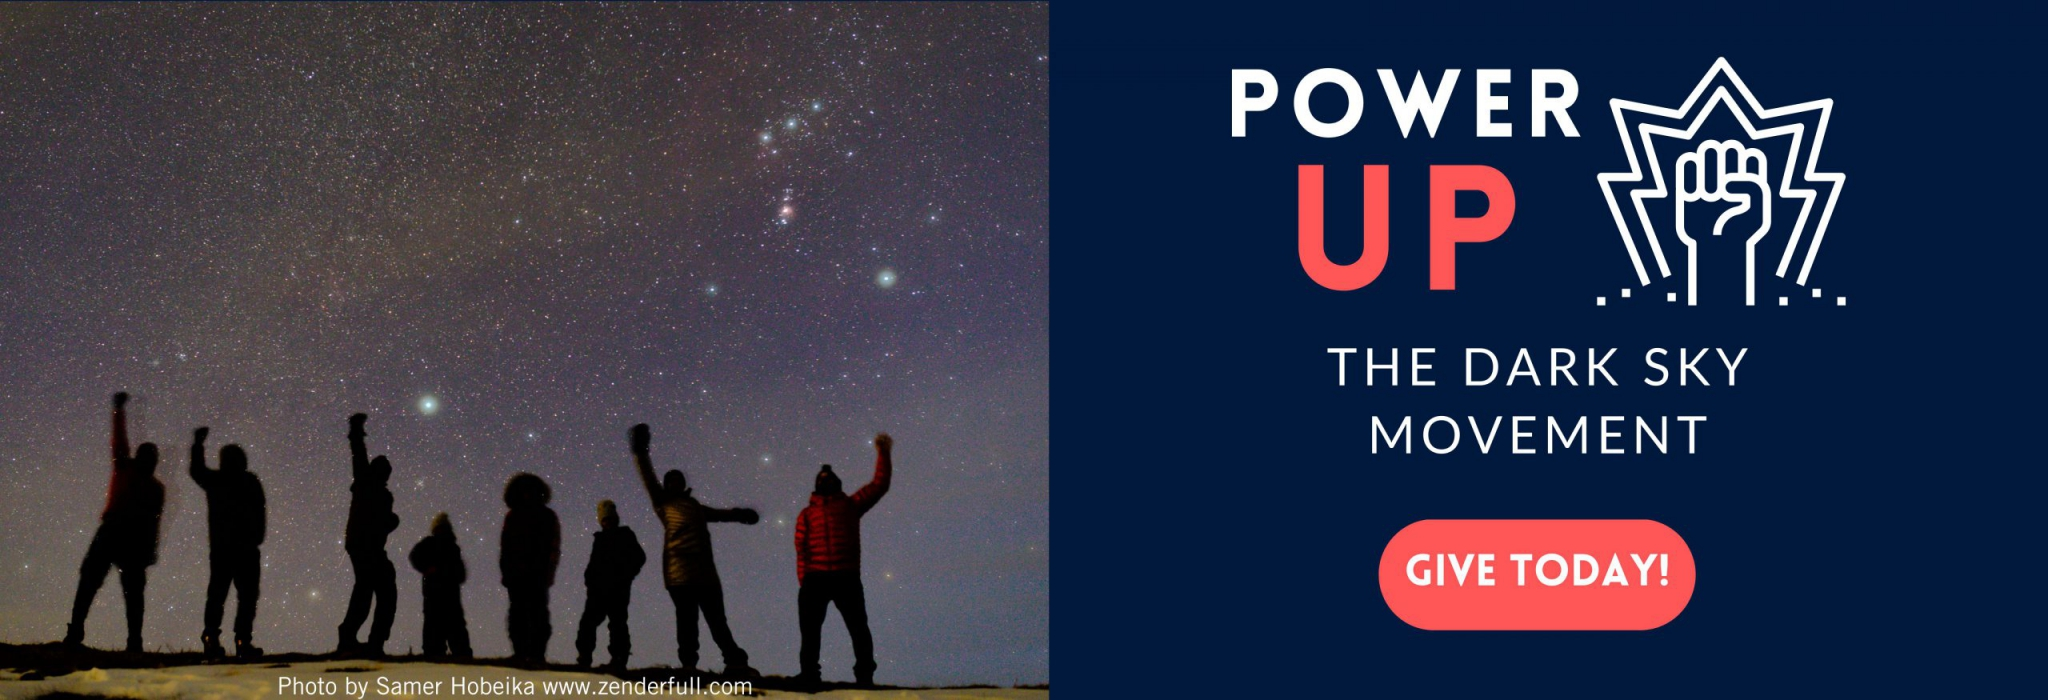 On the left, a photo of people with their fists in the air, celebrating the night. On the right, text that says Power Up the dark sky movement, and a button that says Give Today!